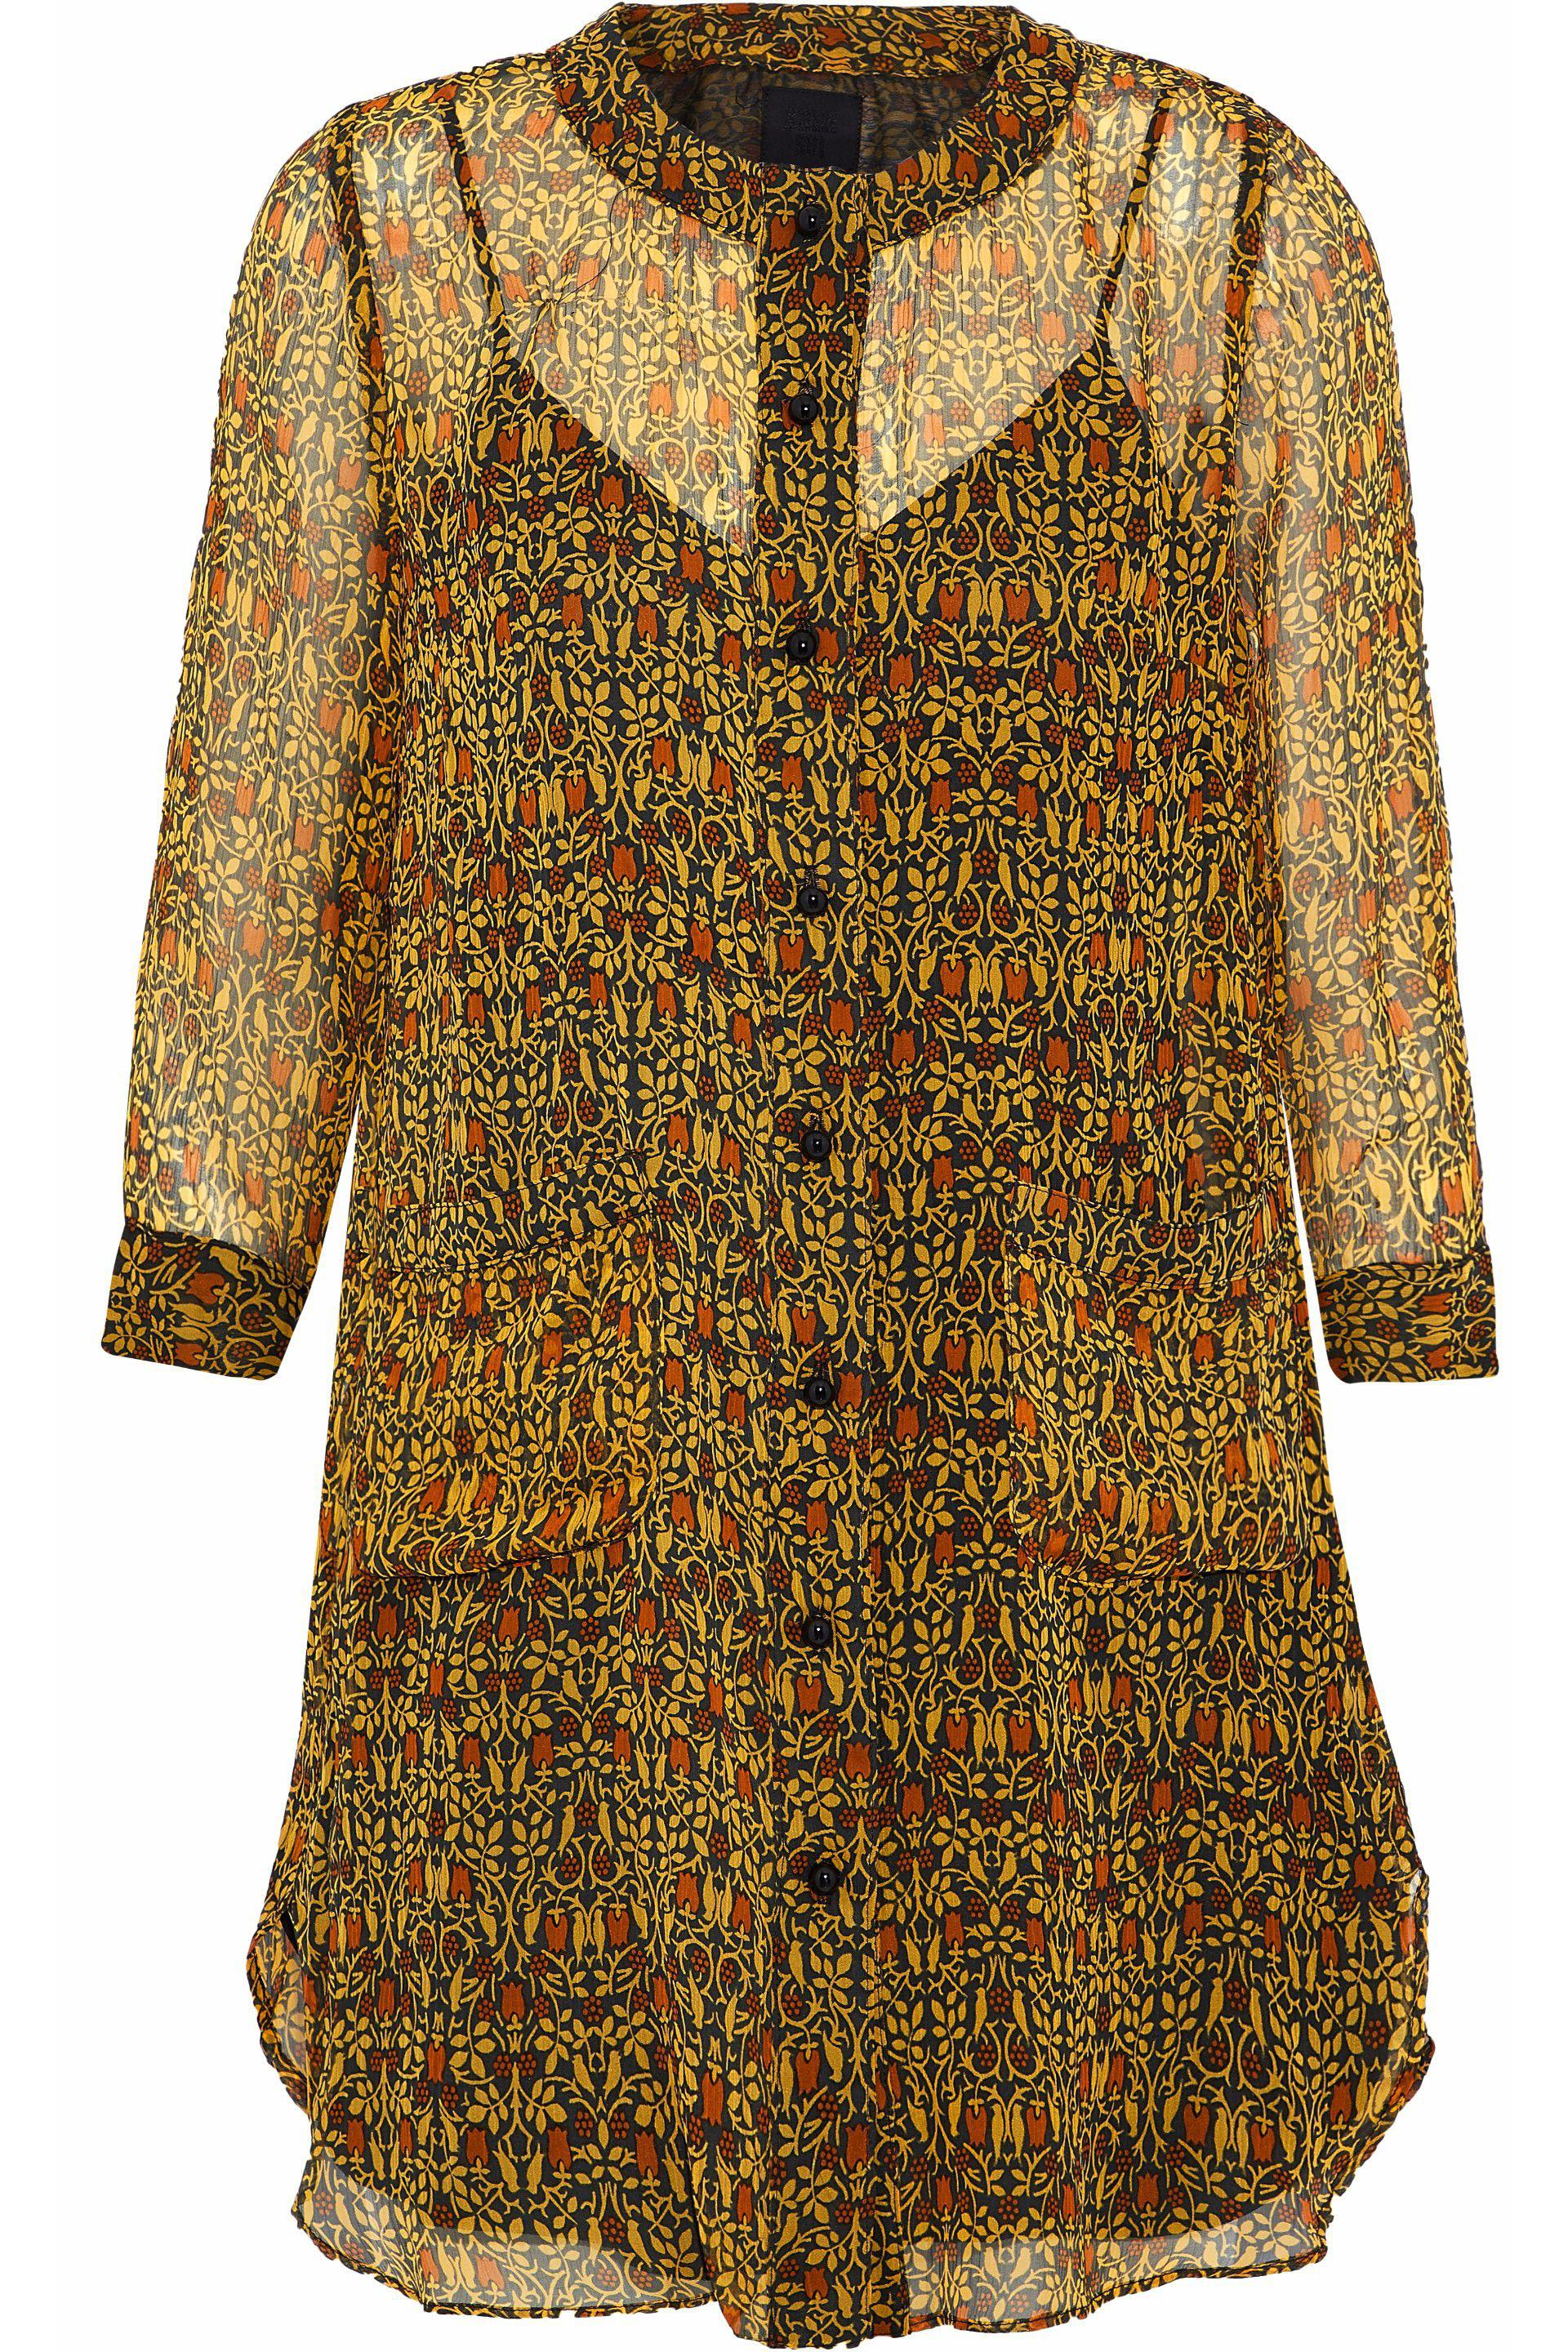 Cheap Sale Clearance Anna Sui Woman Ruffled Floral-print Silk-georgette Mini Shirtdress Multicolor Size M Anna Sui Collections Online Hurry Up All Size Discount Wholesale Price pMytyQ6hJ